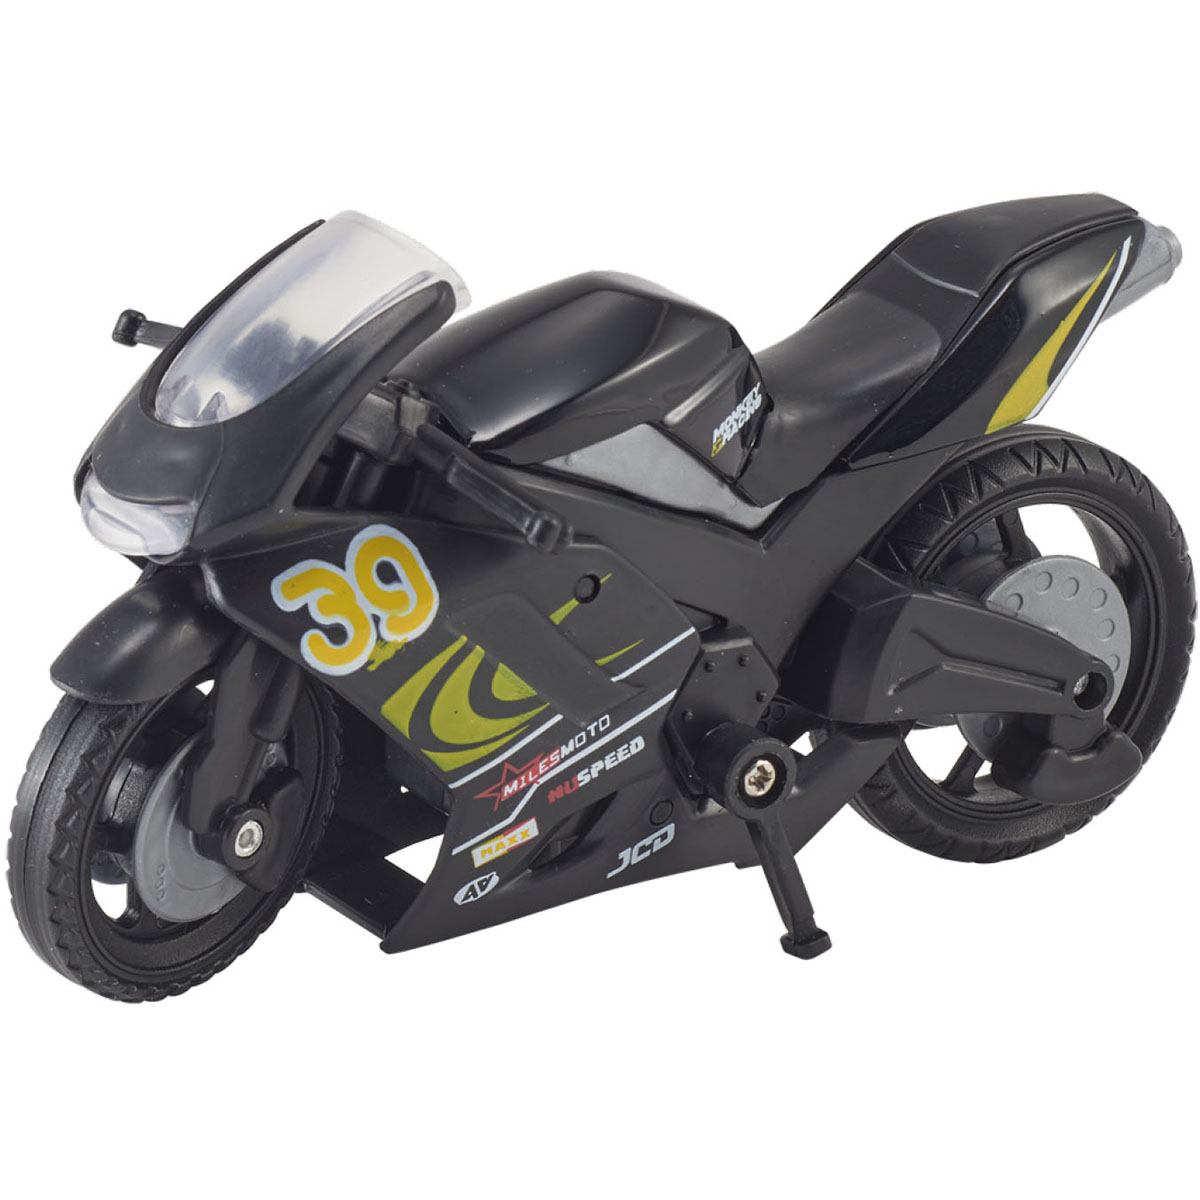 Motocicleta Teamsterz Speed Bike, Negru